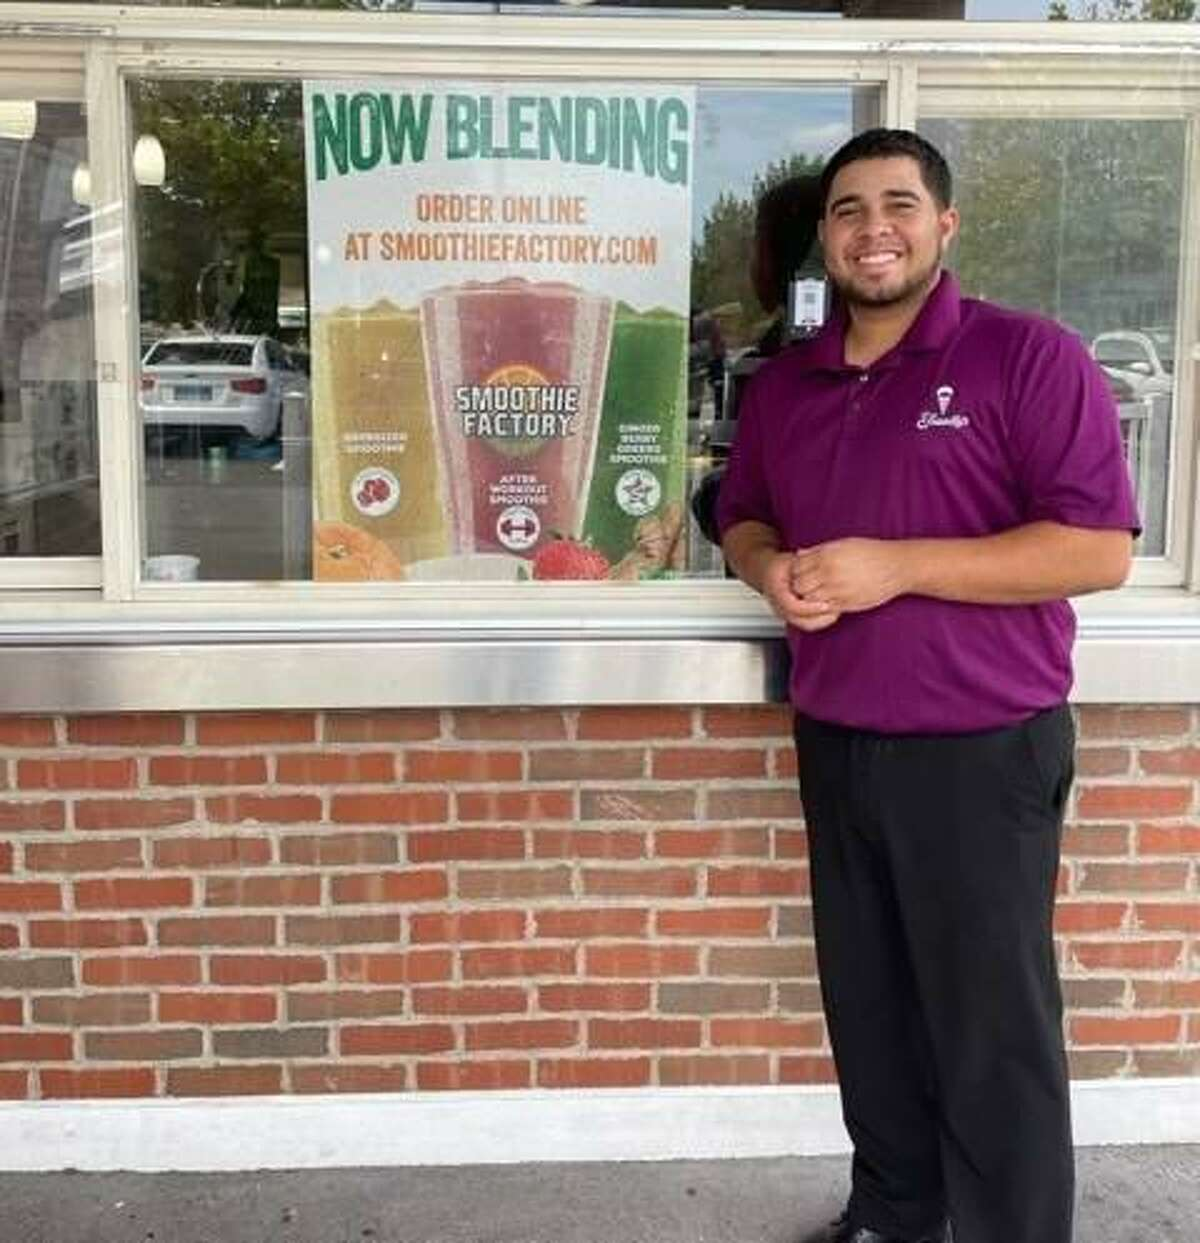 Wilbert Vidro, general manger of the North Haven Friendly's, stands next to a sign advertising vegetable and fruit smoothies as the latest menu edition.